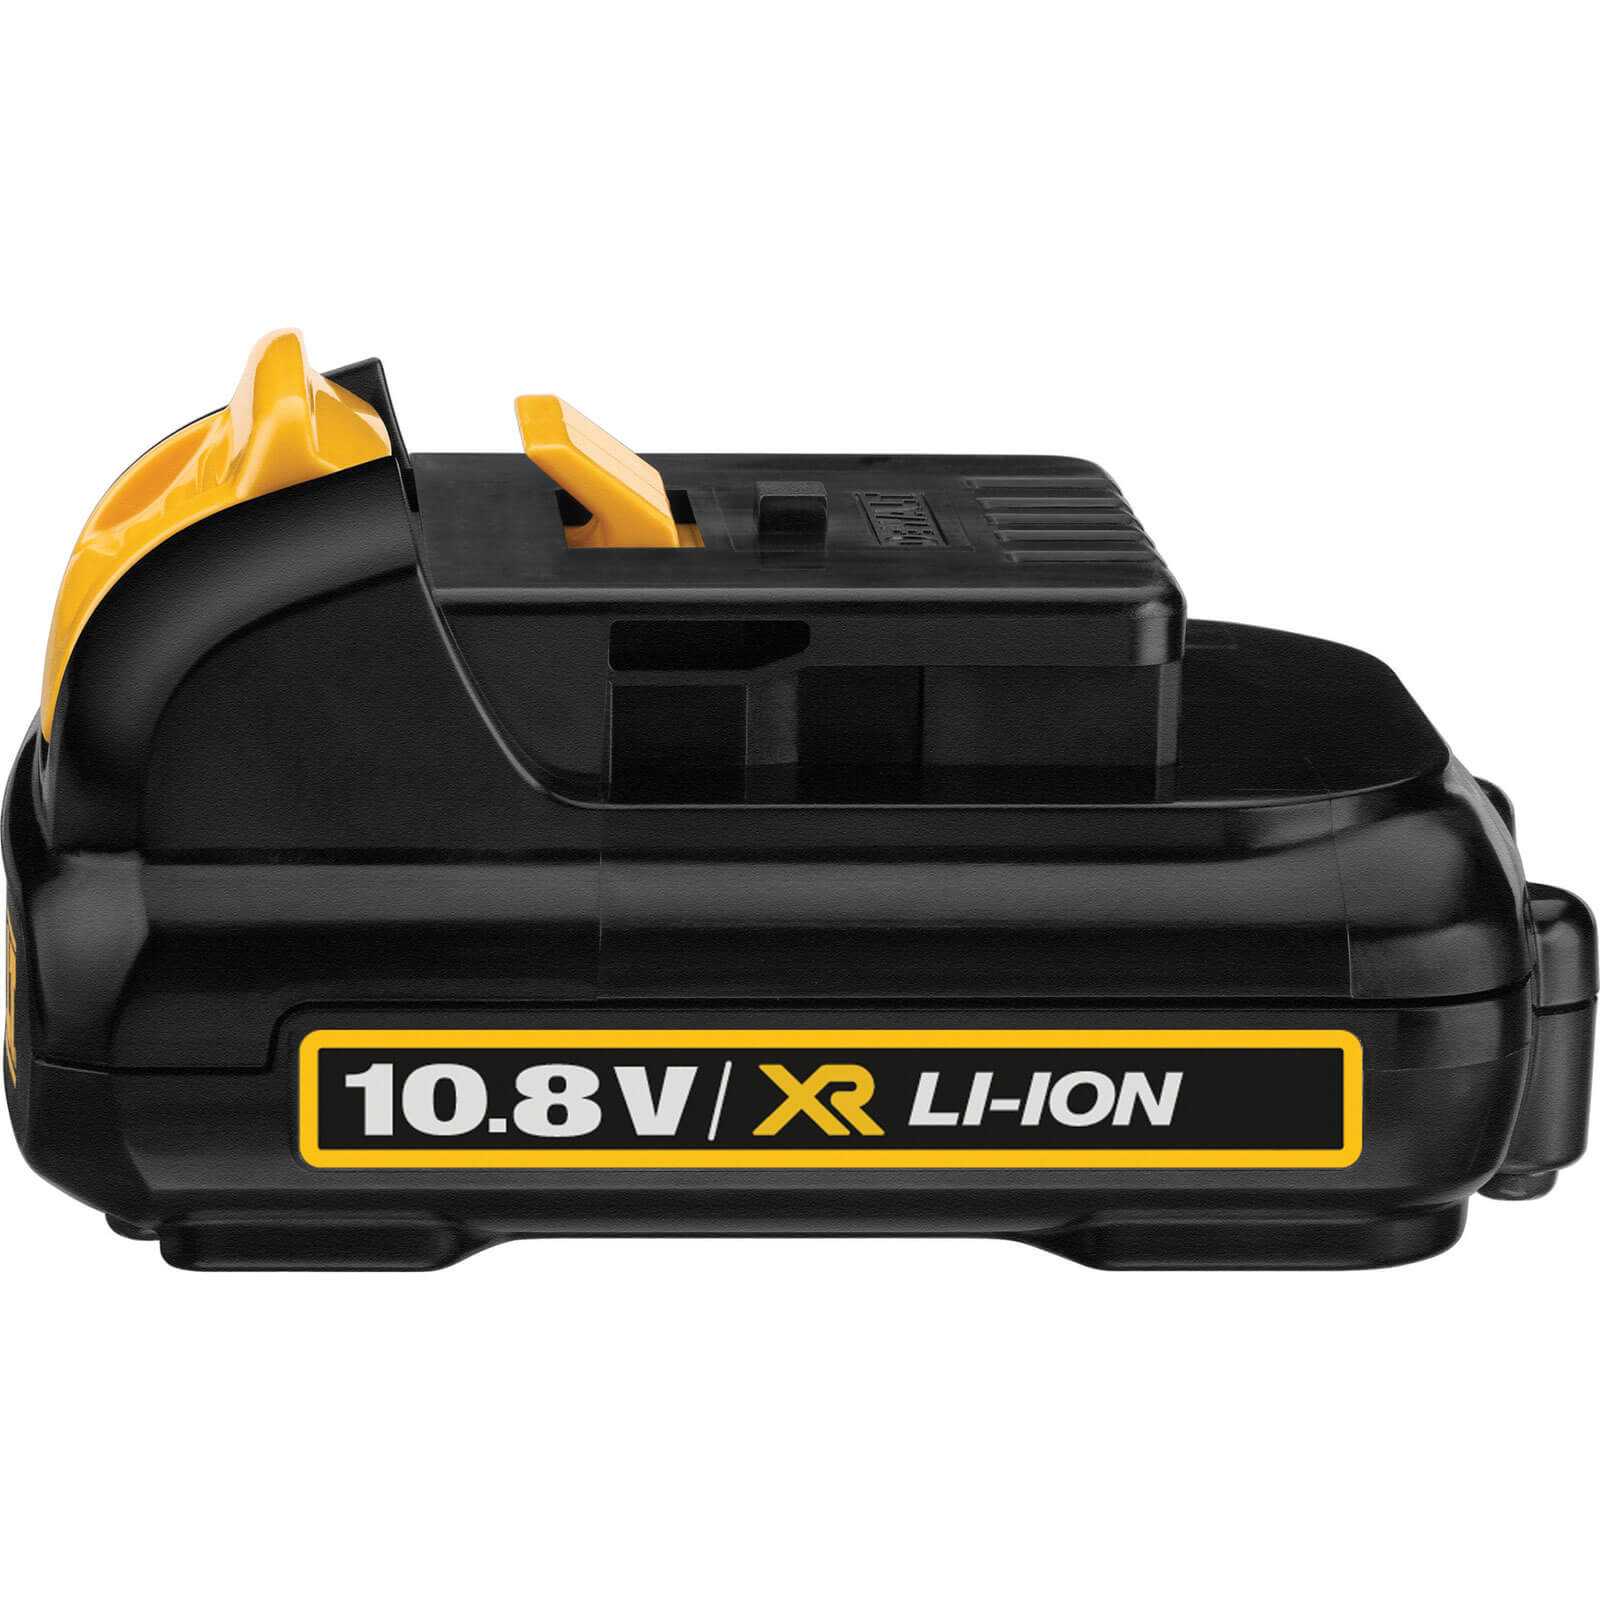 Image of DeWalt DCB127 10.8v XR Cordless Li-ion Battery 2ah 2ah